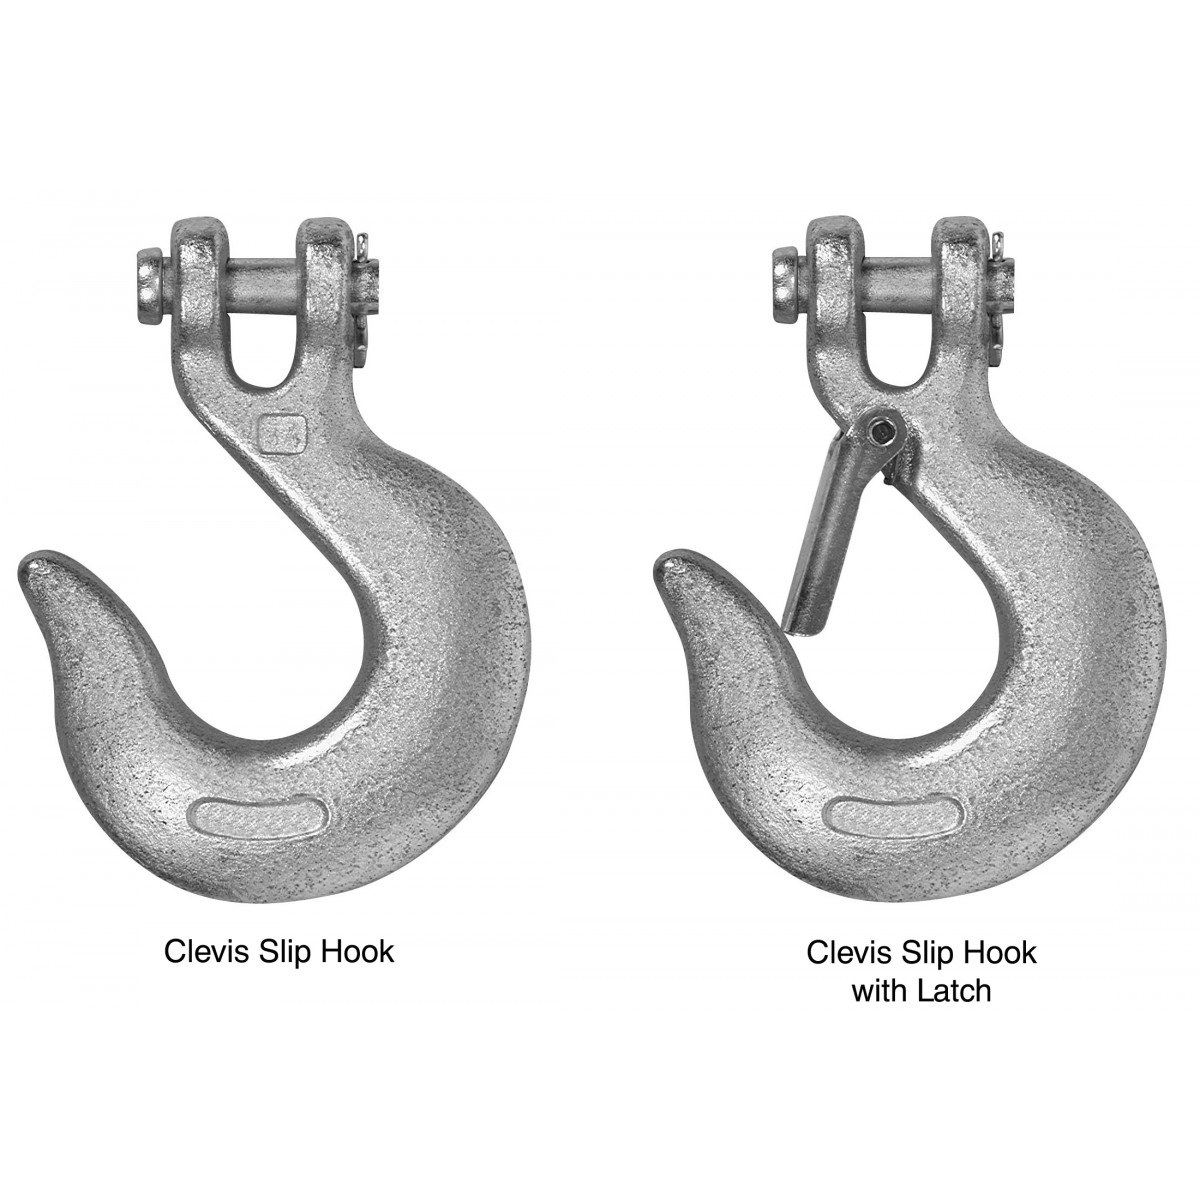 Picture of Campbell T9401524 Clevis Slip Hook, 5/16 in Trade, 3900 lb Working Load, 43 Grade, Steel, Zinc